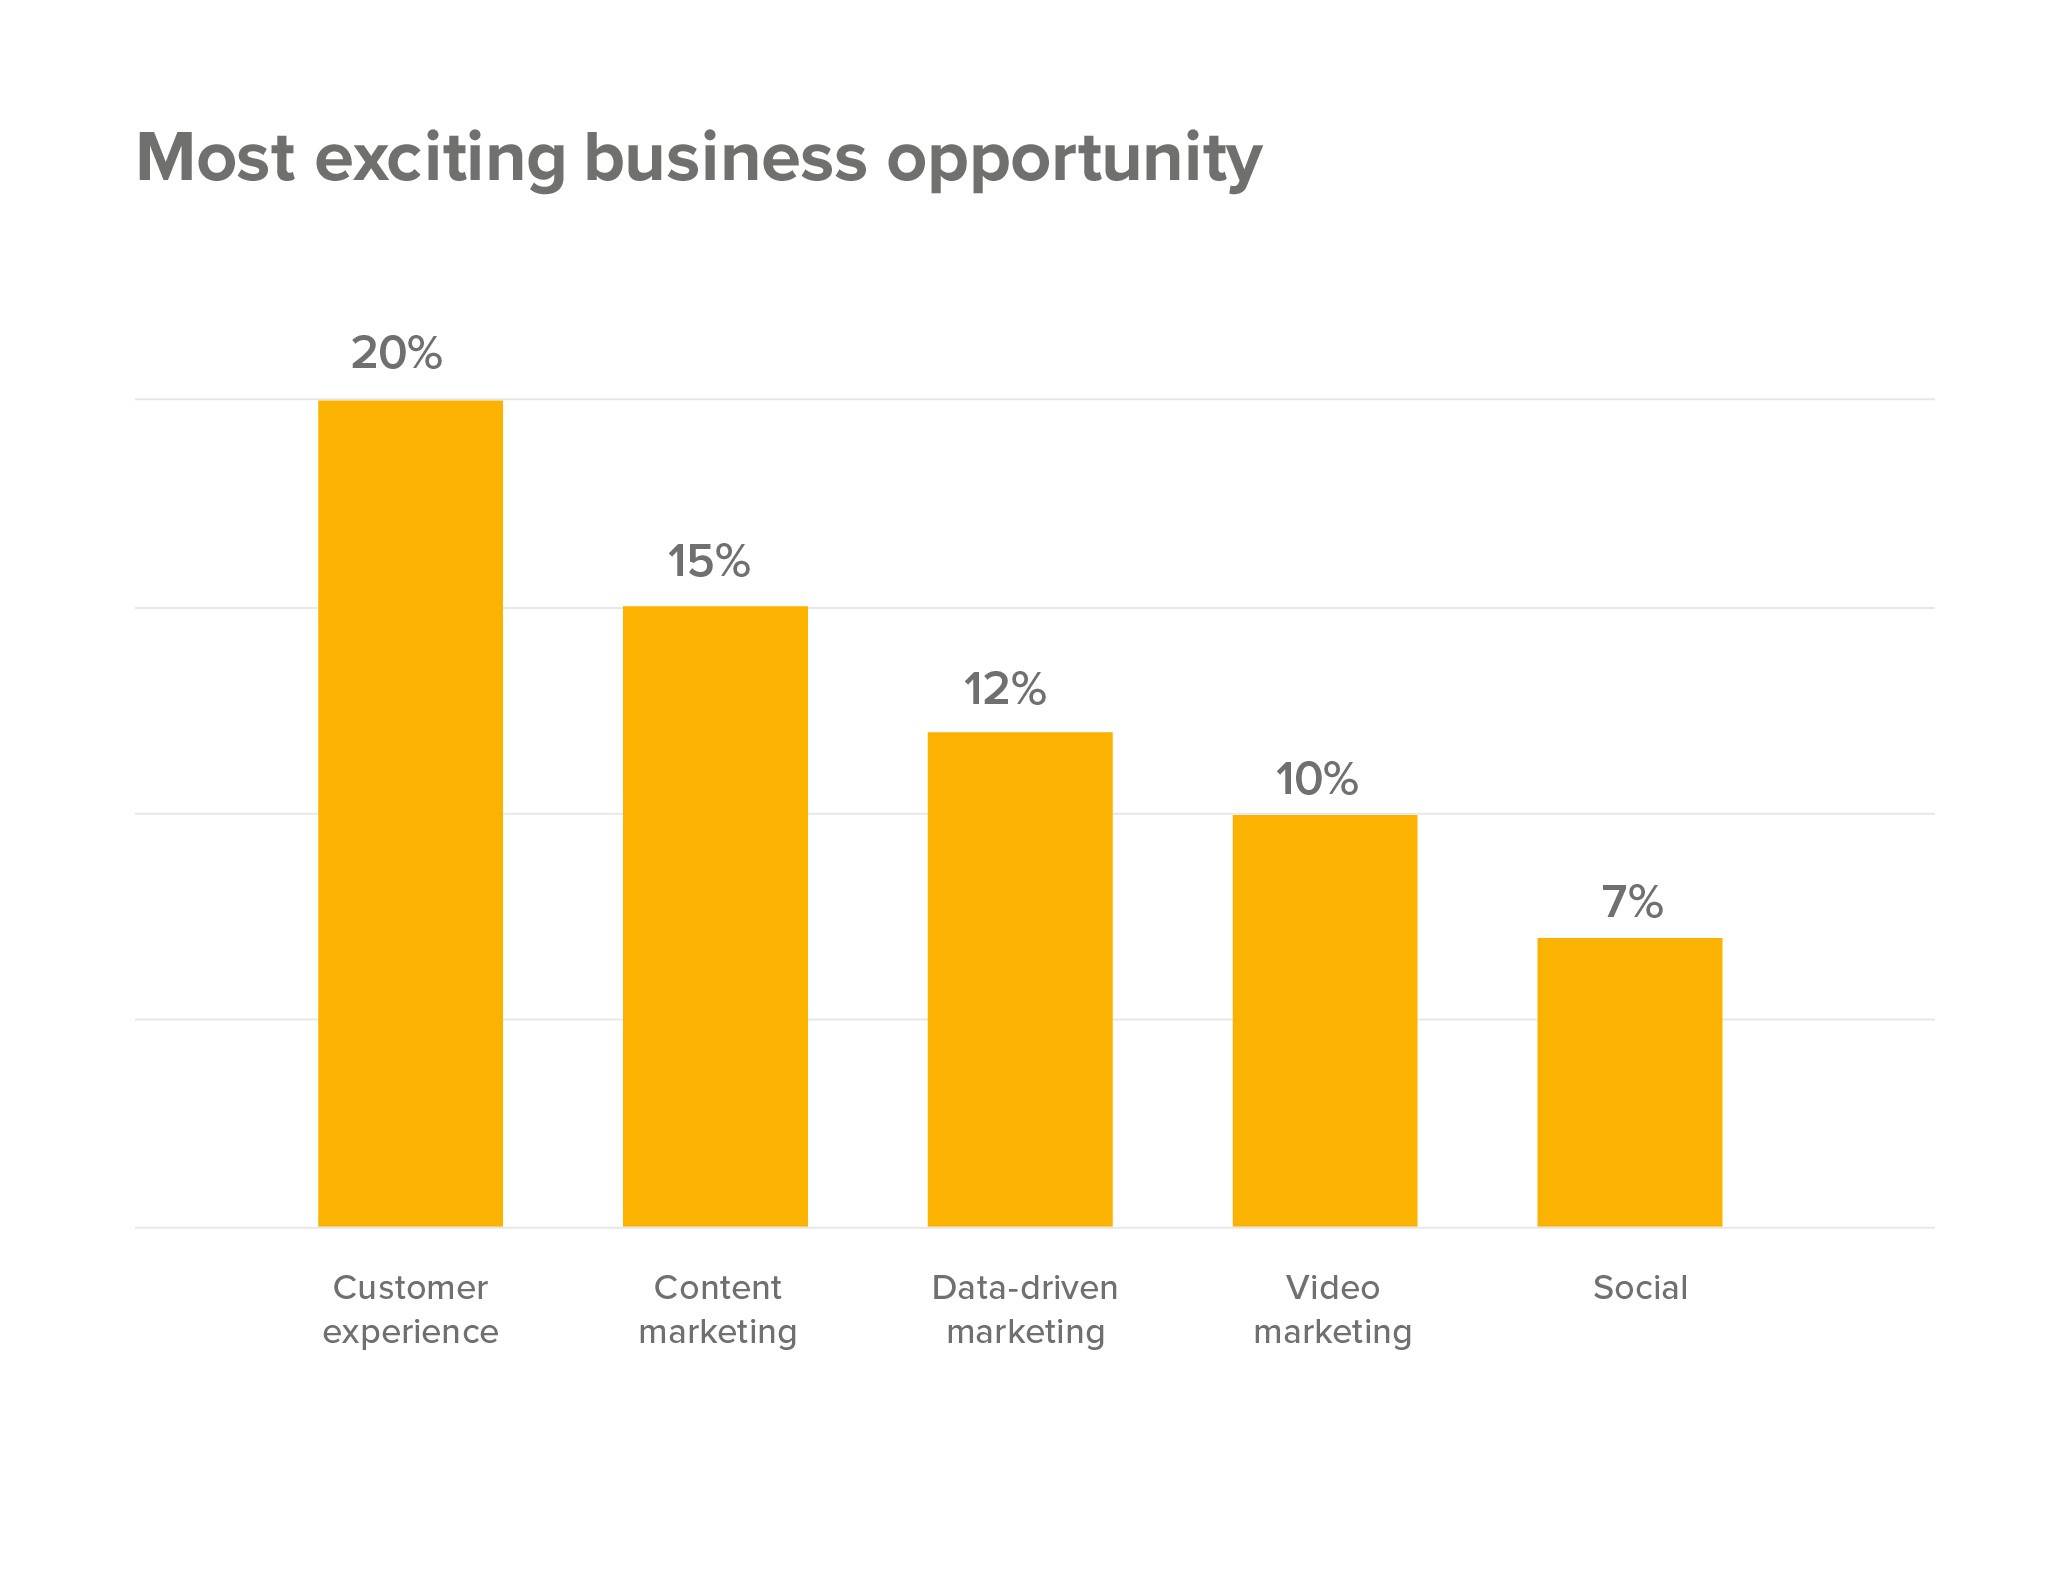 Investing in CX is one of the top-most priorities for businesses in 2020